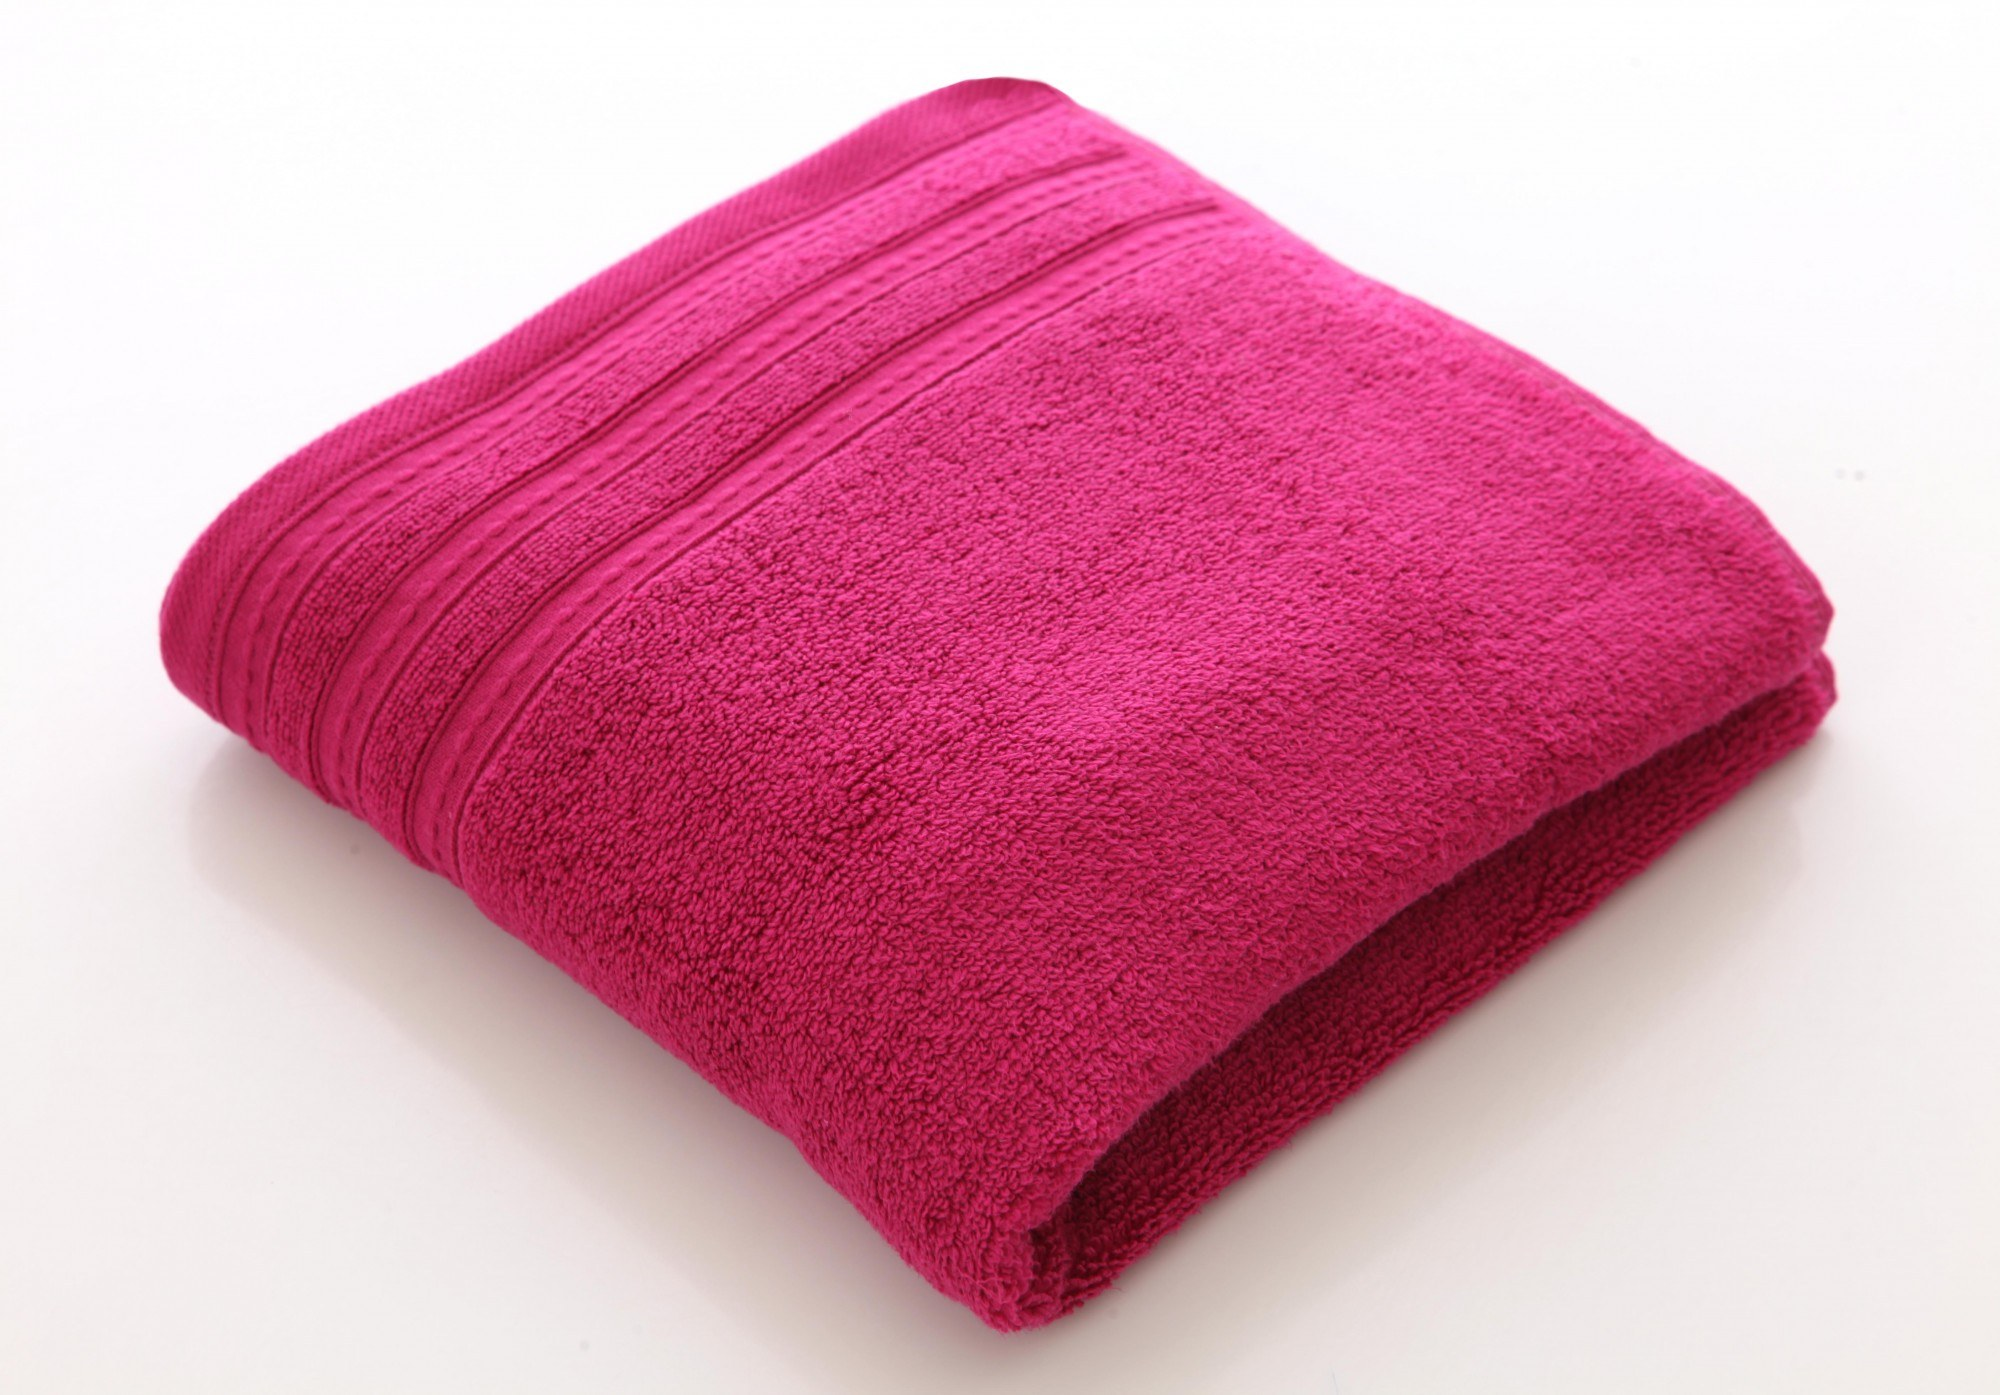 Super Soft Bath Towel Pink Online Shopping